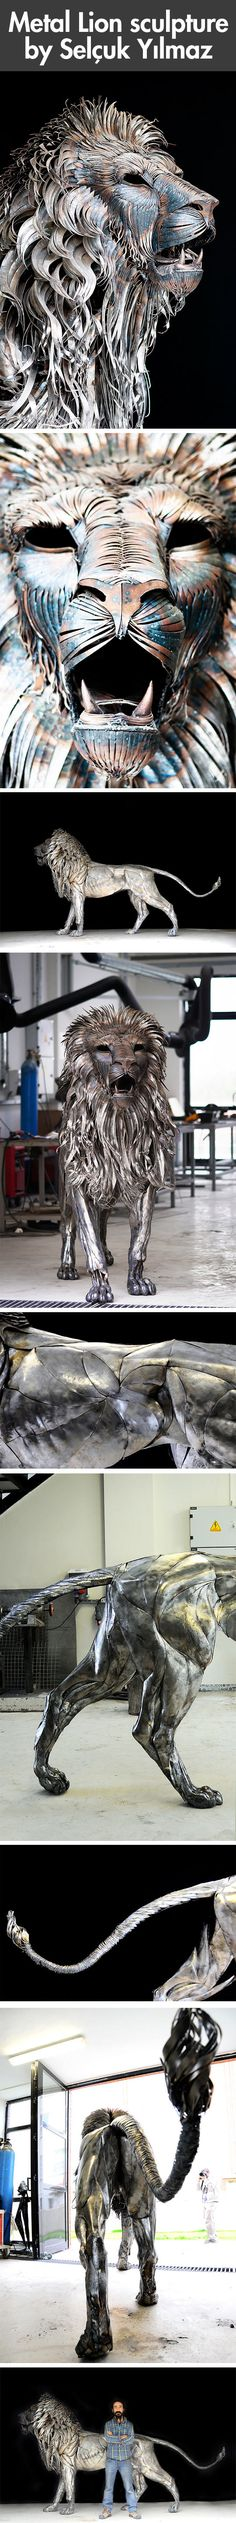 Created from nearly 4,000 pieces of metal scraps, Aslan (Turkish for Lion), is a recent sculpture by Istanbul-based artist Selçuk Yılmaz. The piece took nearly a year of work and involved hand-cutting and hammering of each individual metal piece. The final work weighs roughly 550 pounds (250kg).